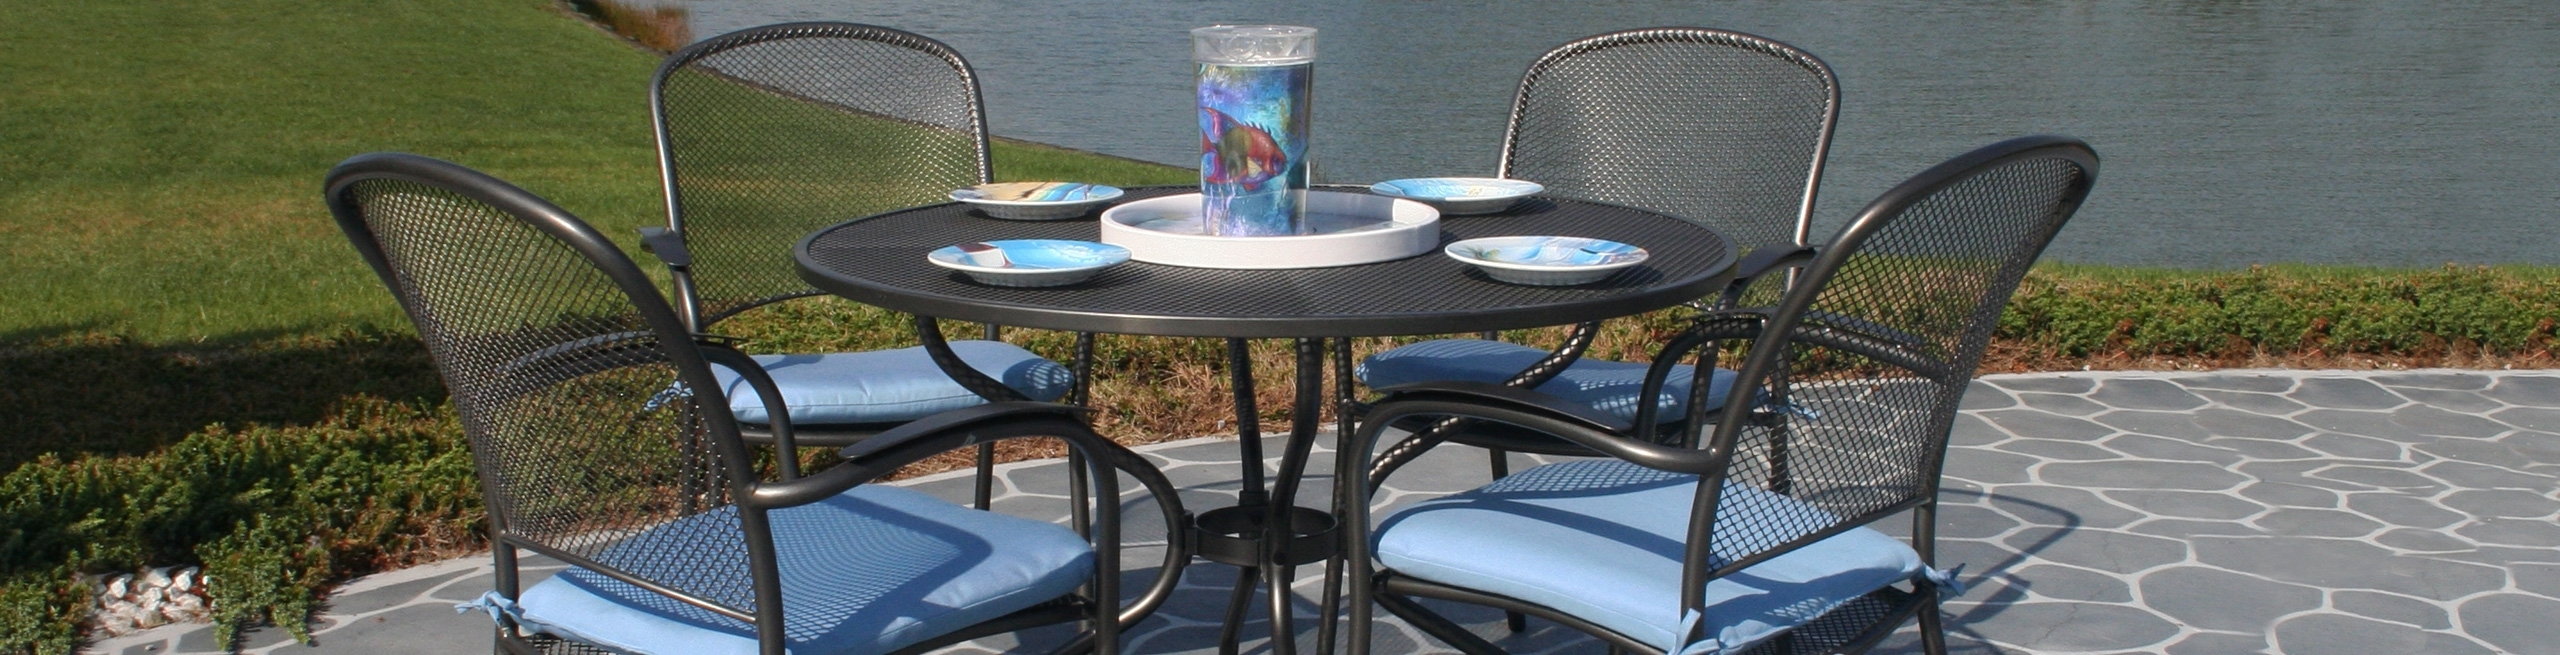 Best And Newest Outdoor Patio Furniture: Kettler Patio Furniture Inside Kettler Patio Umbrellas (View 3 of 20)